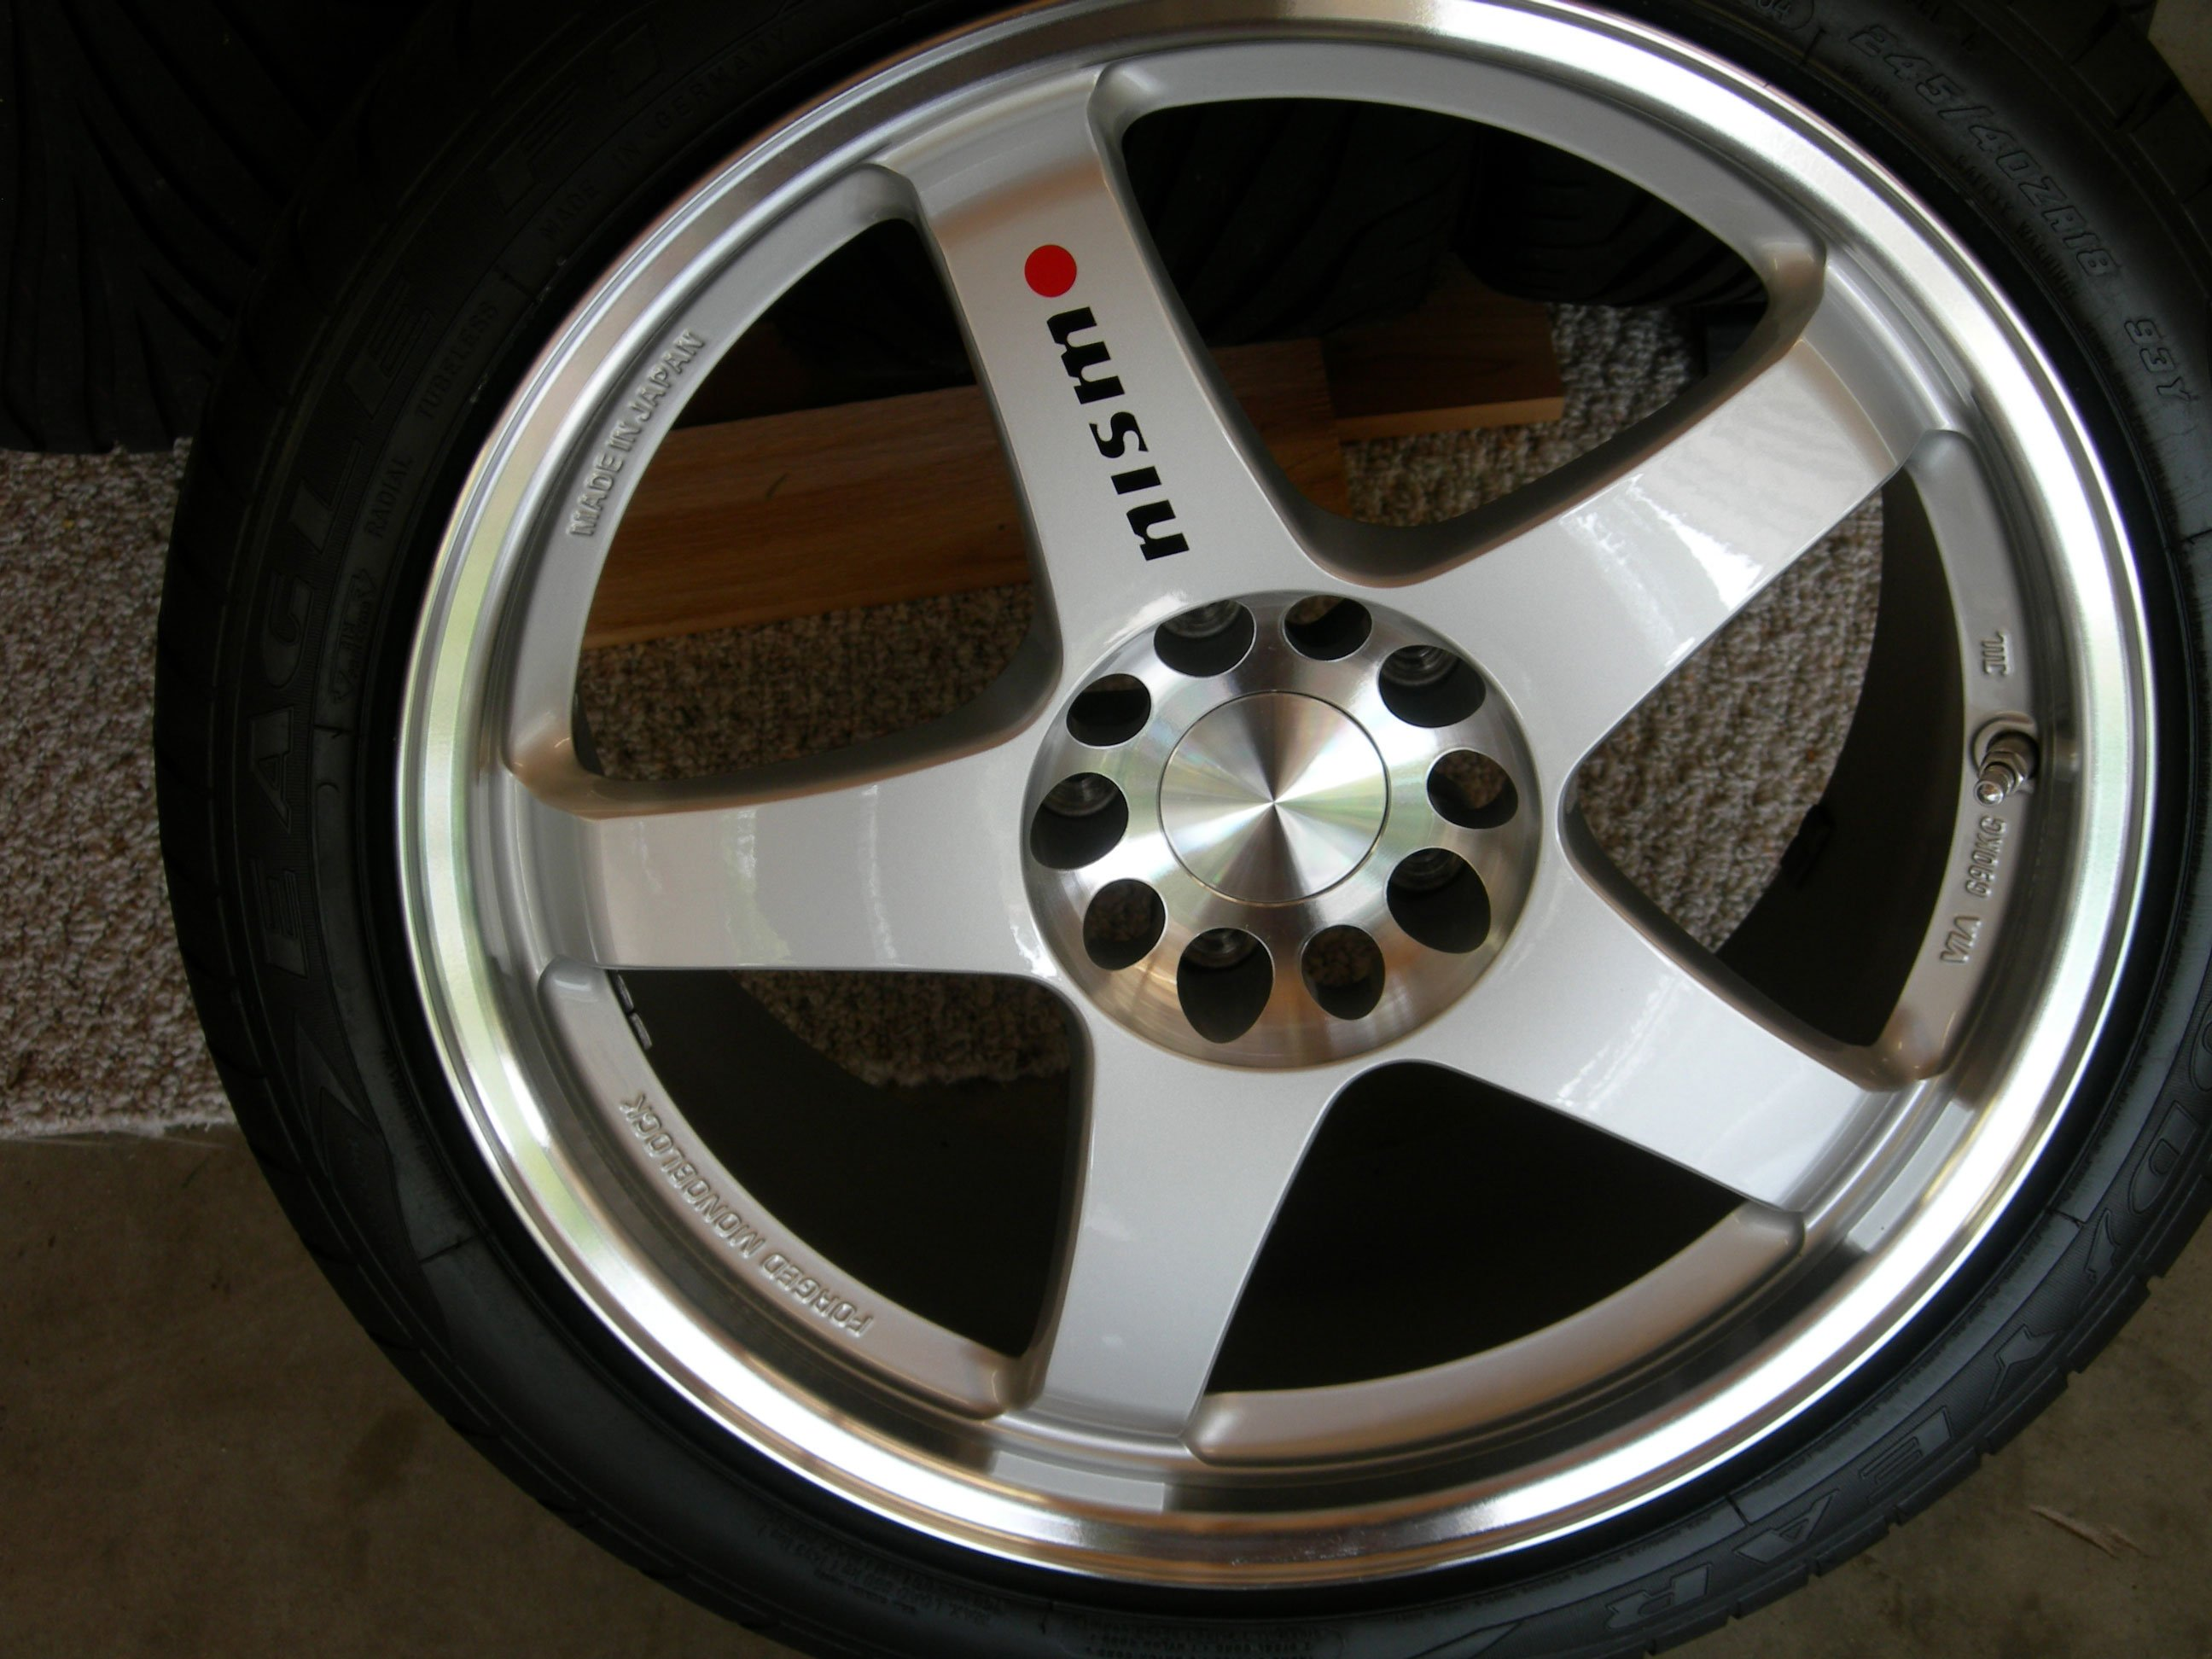 Nismo Wheels For Sale - Nissan